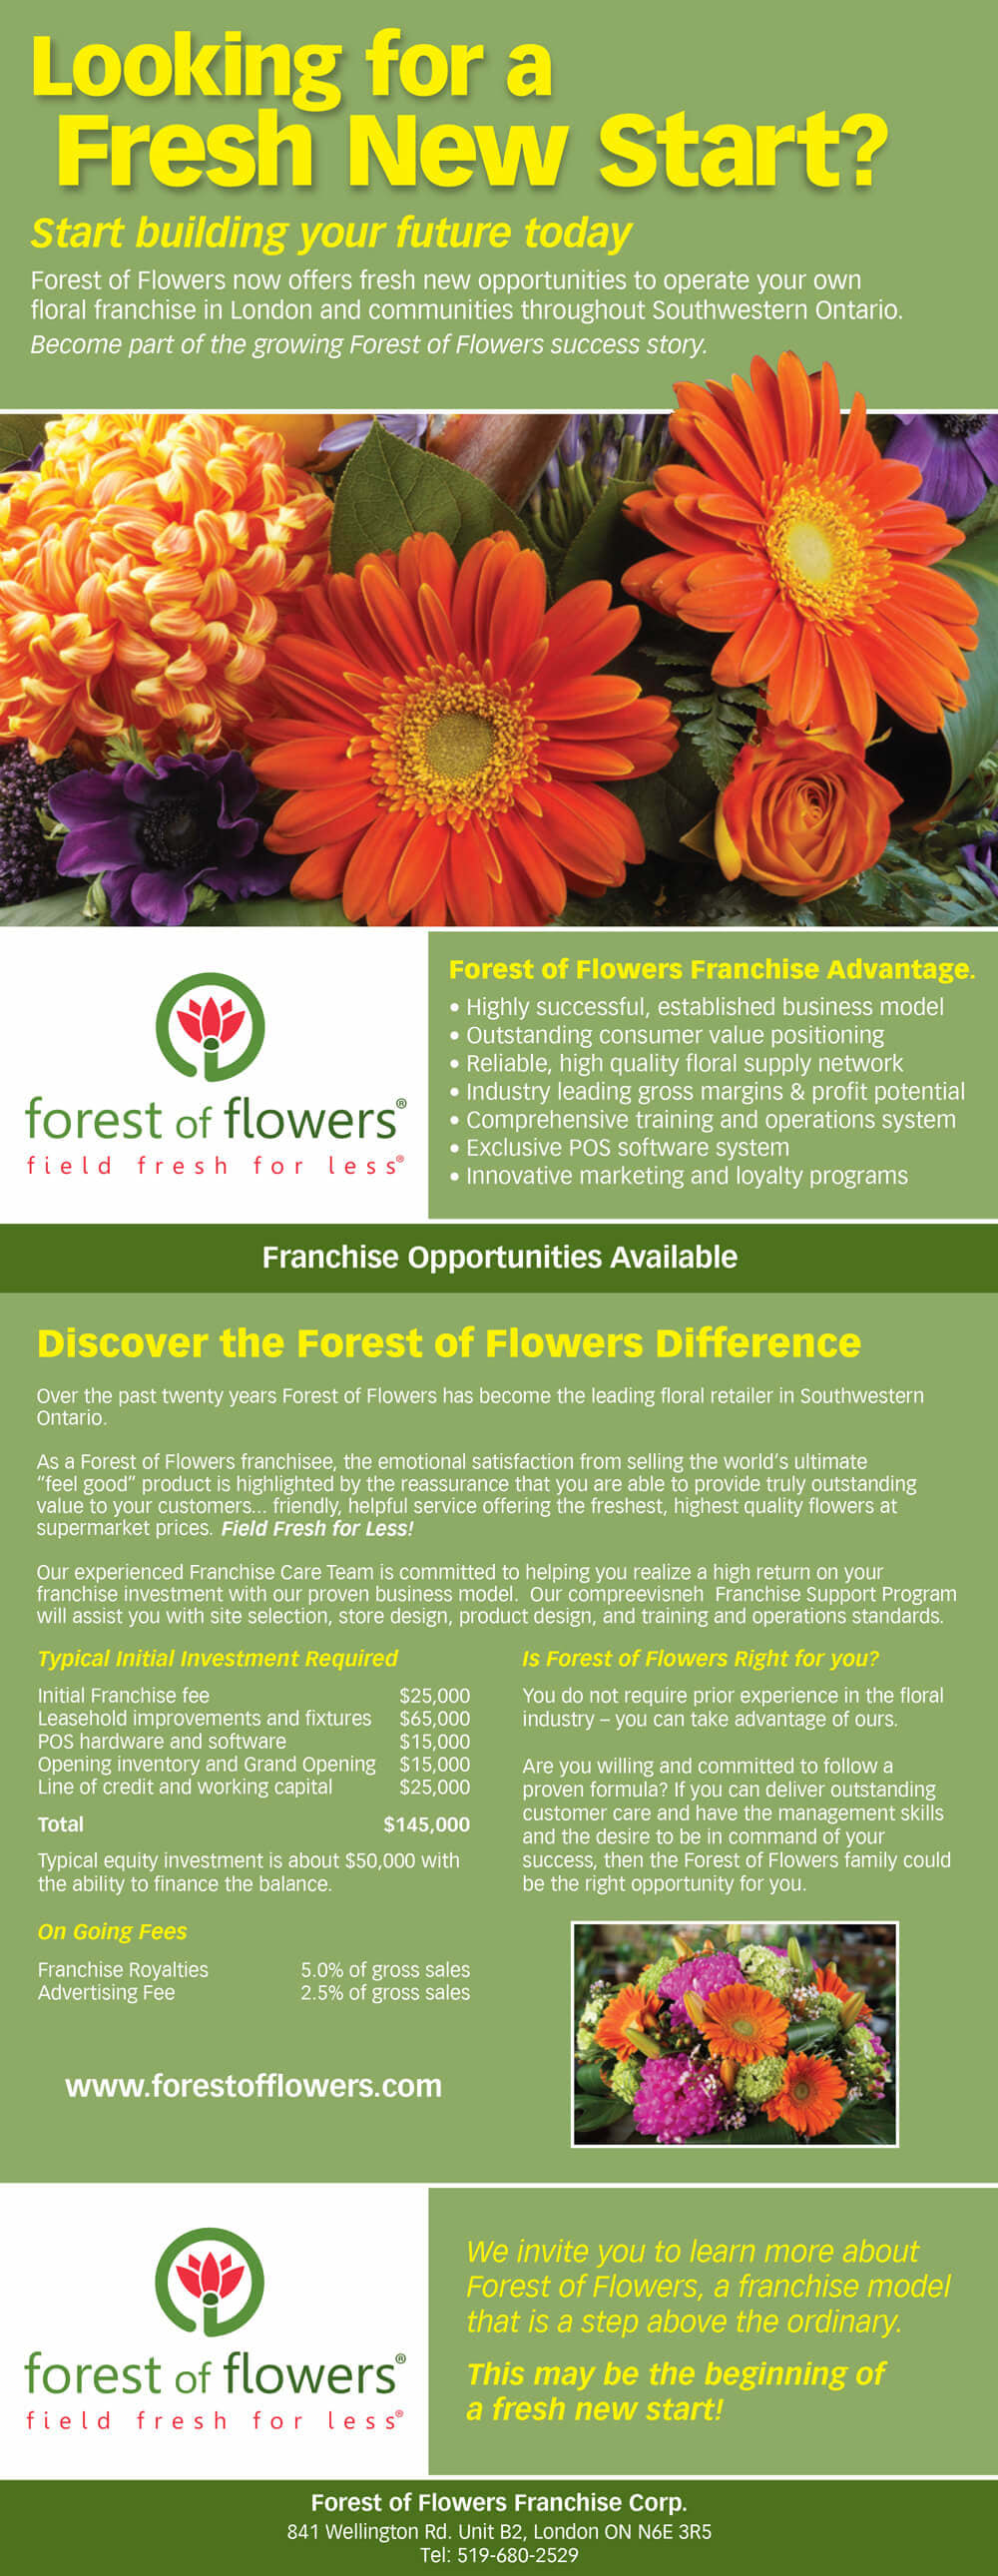 FOF Franchise Brochure